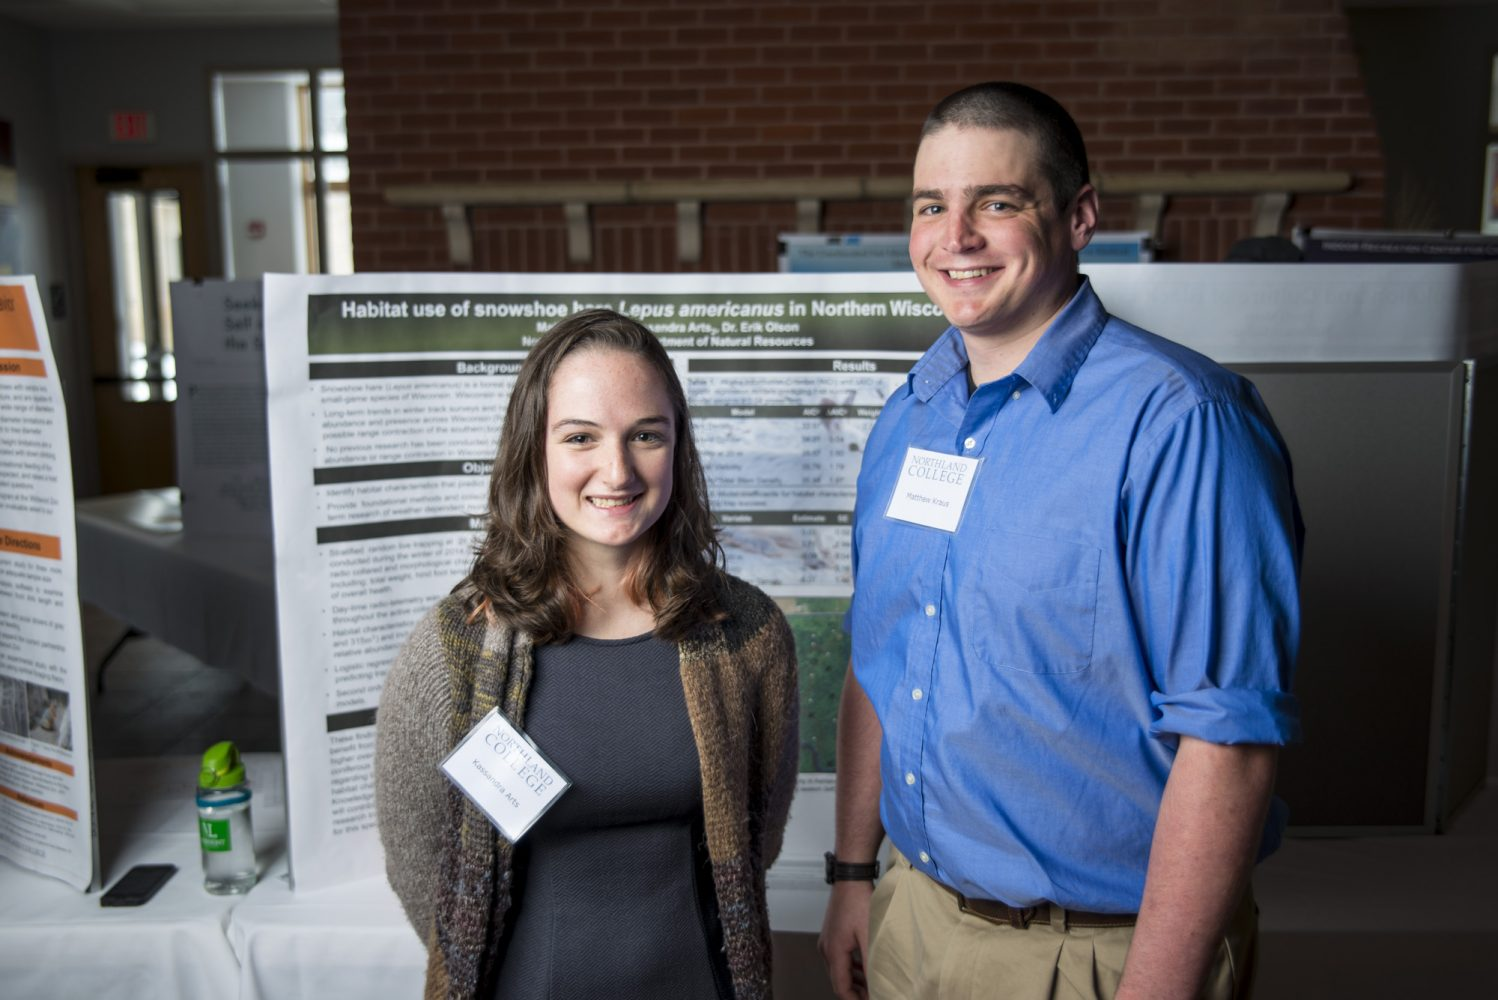 Students at poster session